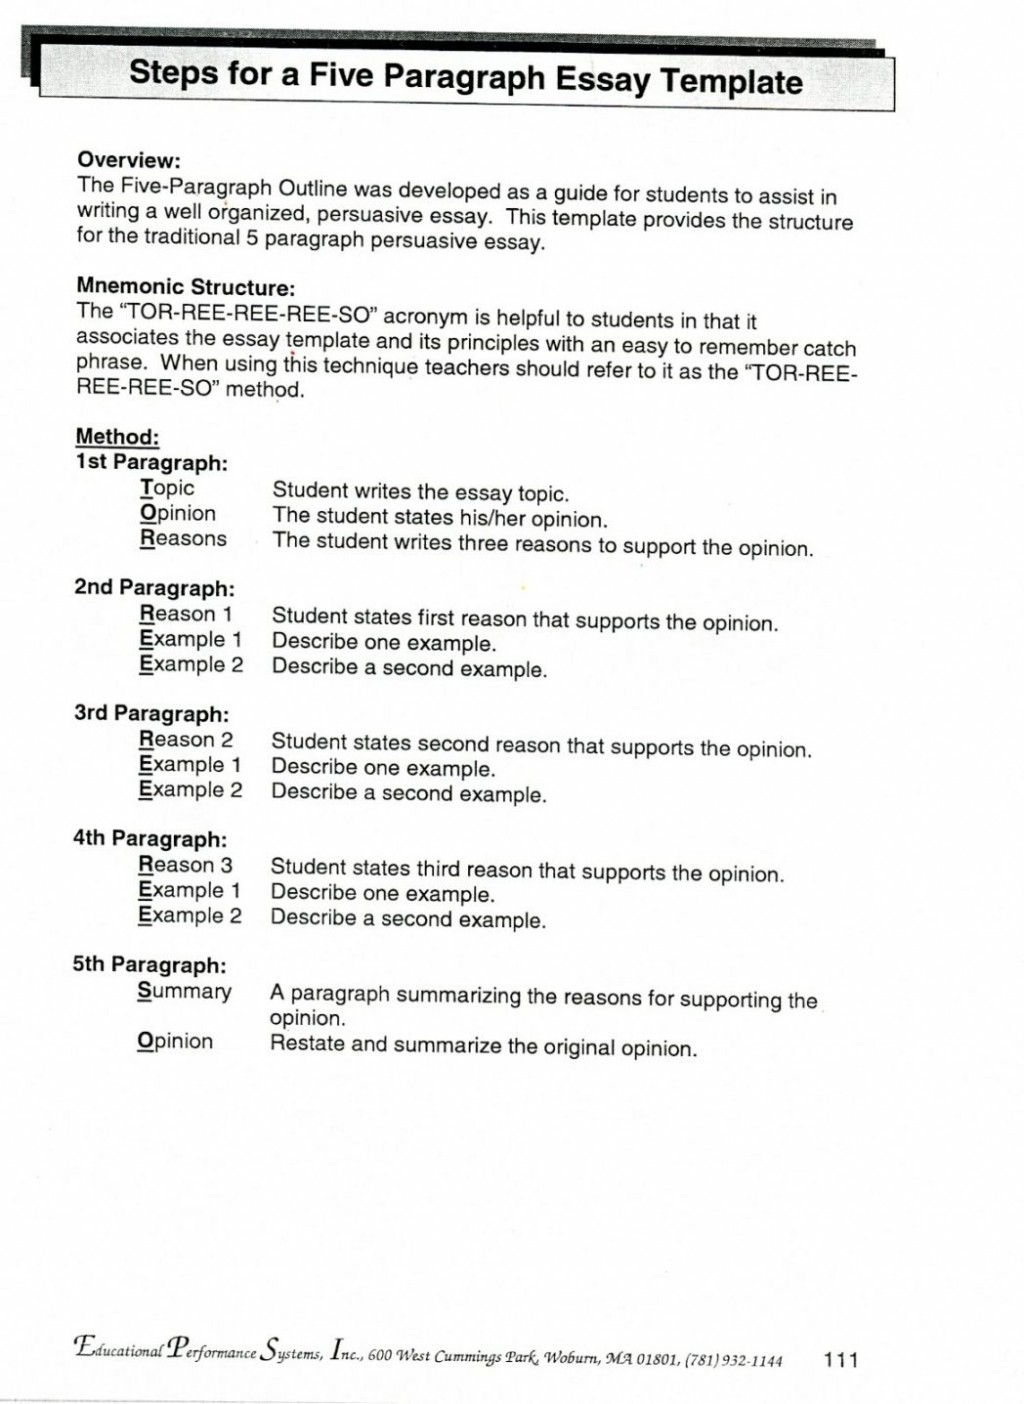 017 Persuade Essay Writing Persuasive Argumentative Sample 5th Grade Exa Dareles Informative Samples Pdf Descriptive Expository Opinion 1048x1437 For Impressive Essays Written By Fifth Graders A Large